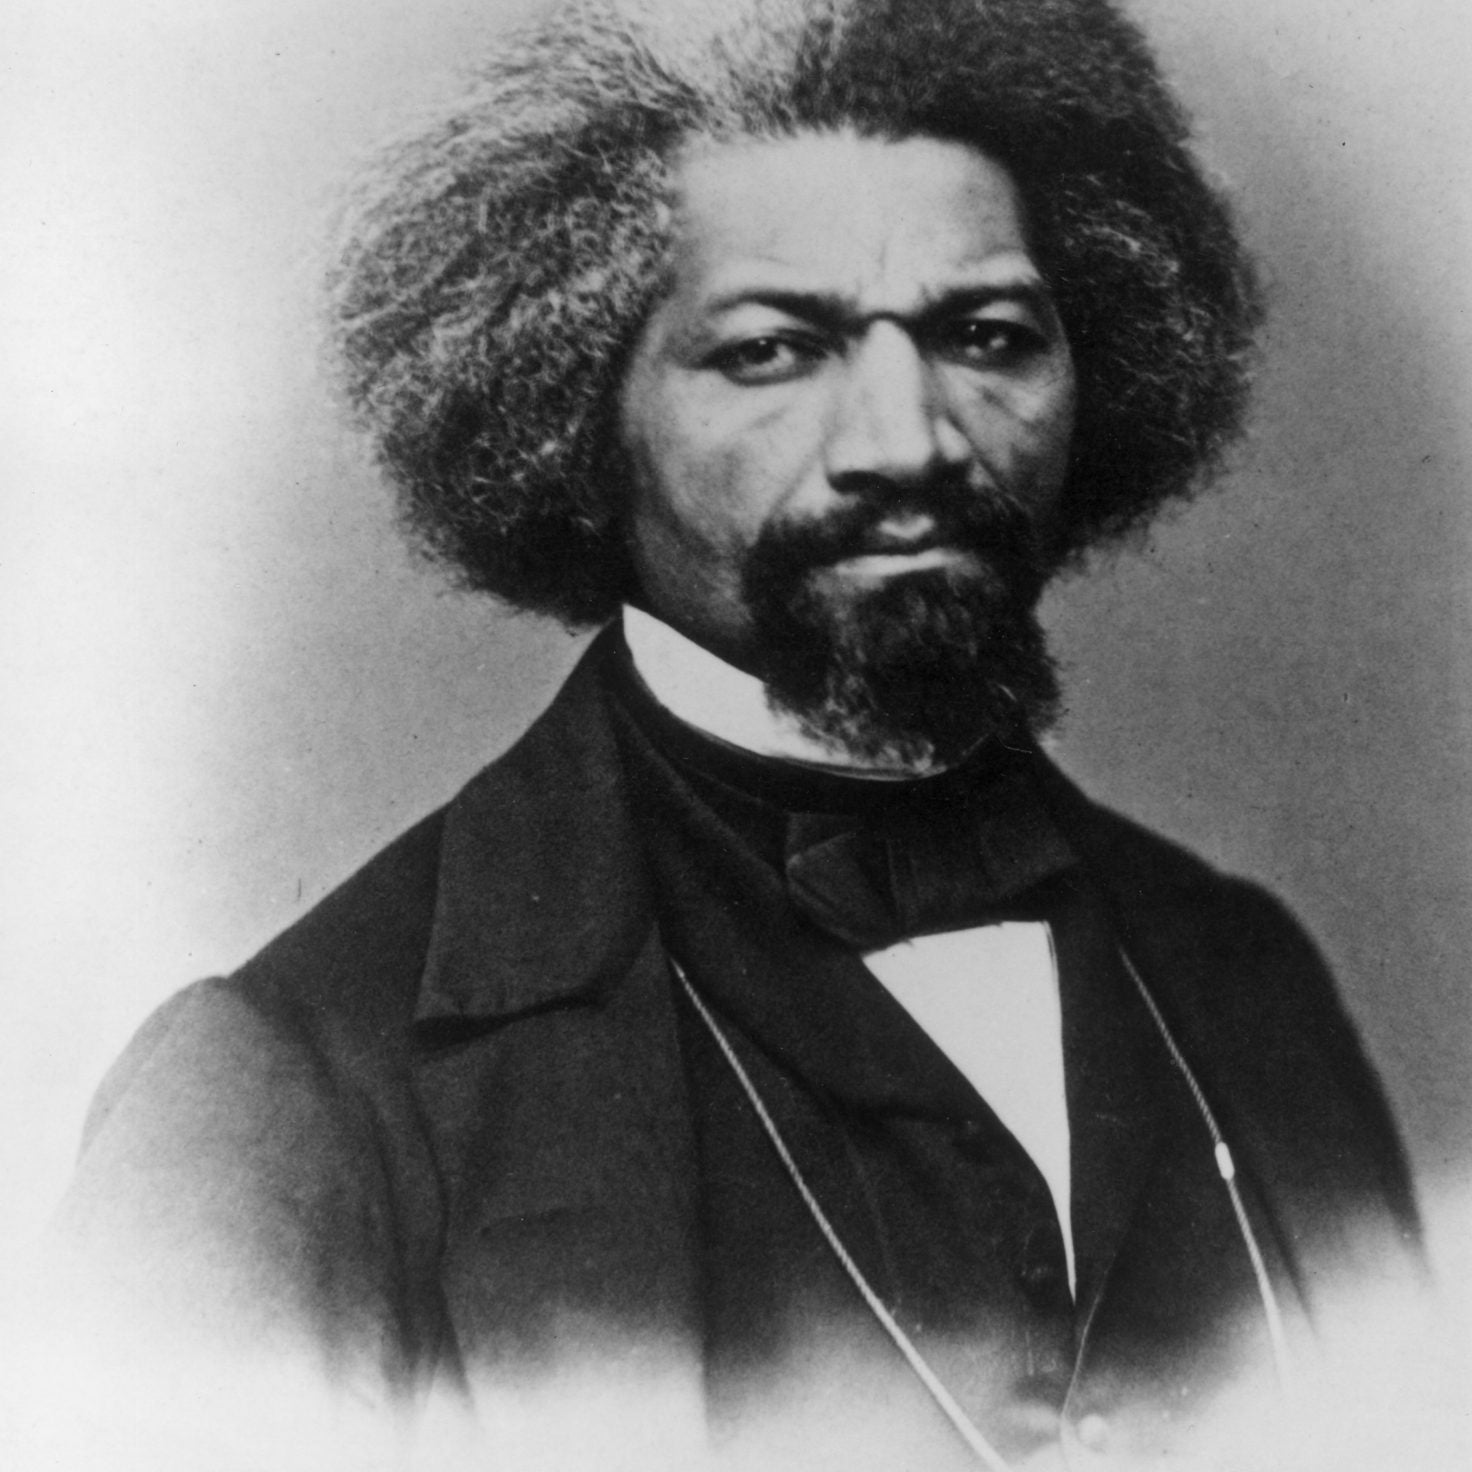 Frederick Douglass Statue In New York Torn From Base